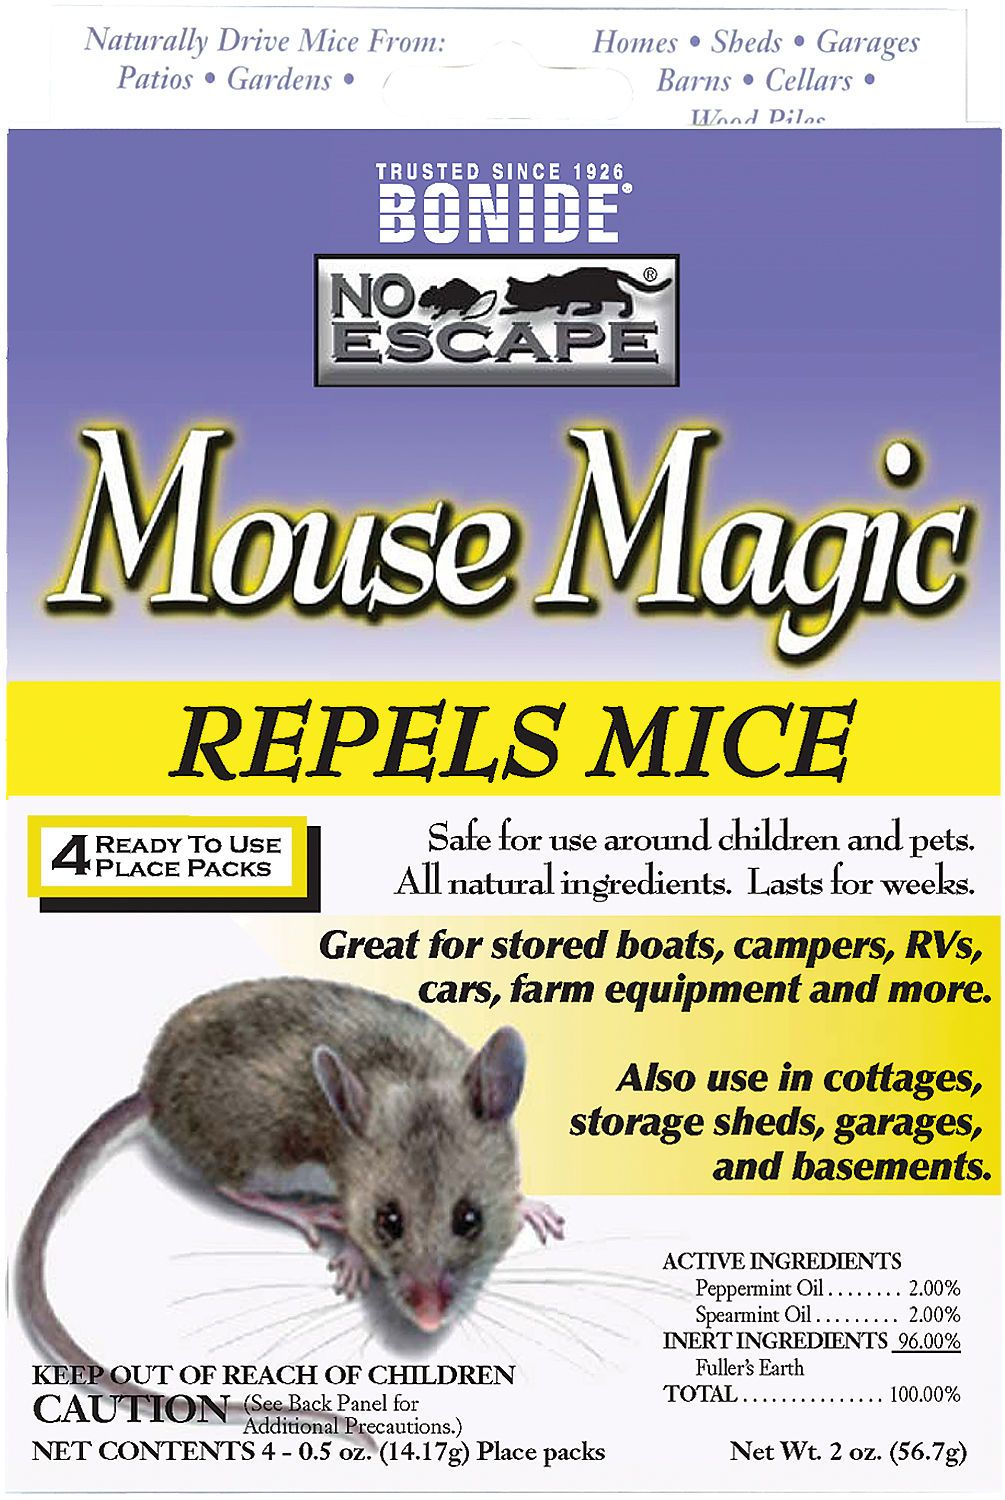 Mouse Magic Natural Mouse Repellent By Bonide Mice Repellent Animals For Kids Pest Control